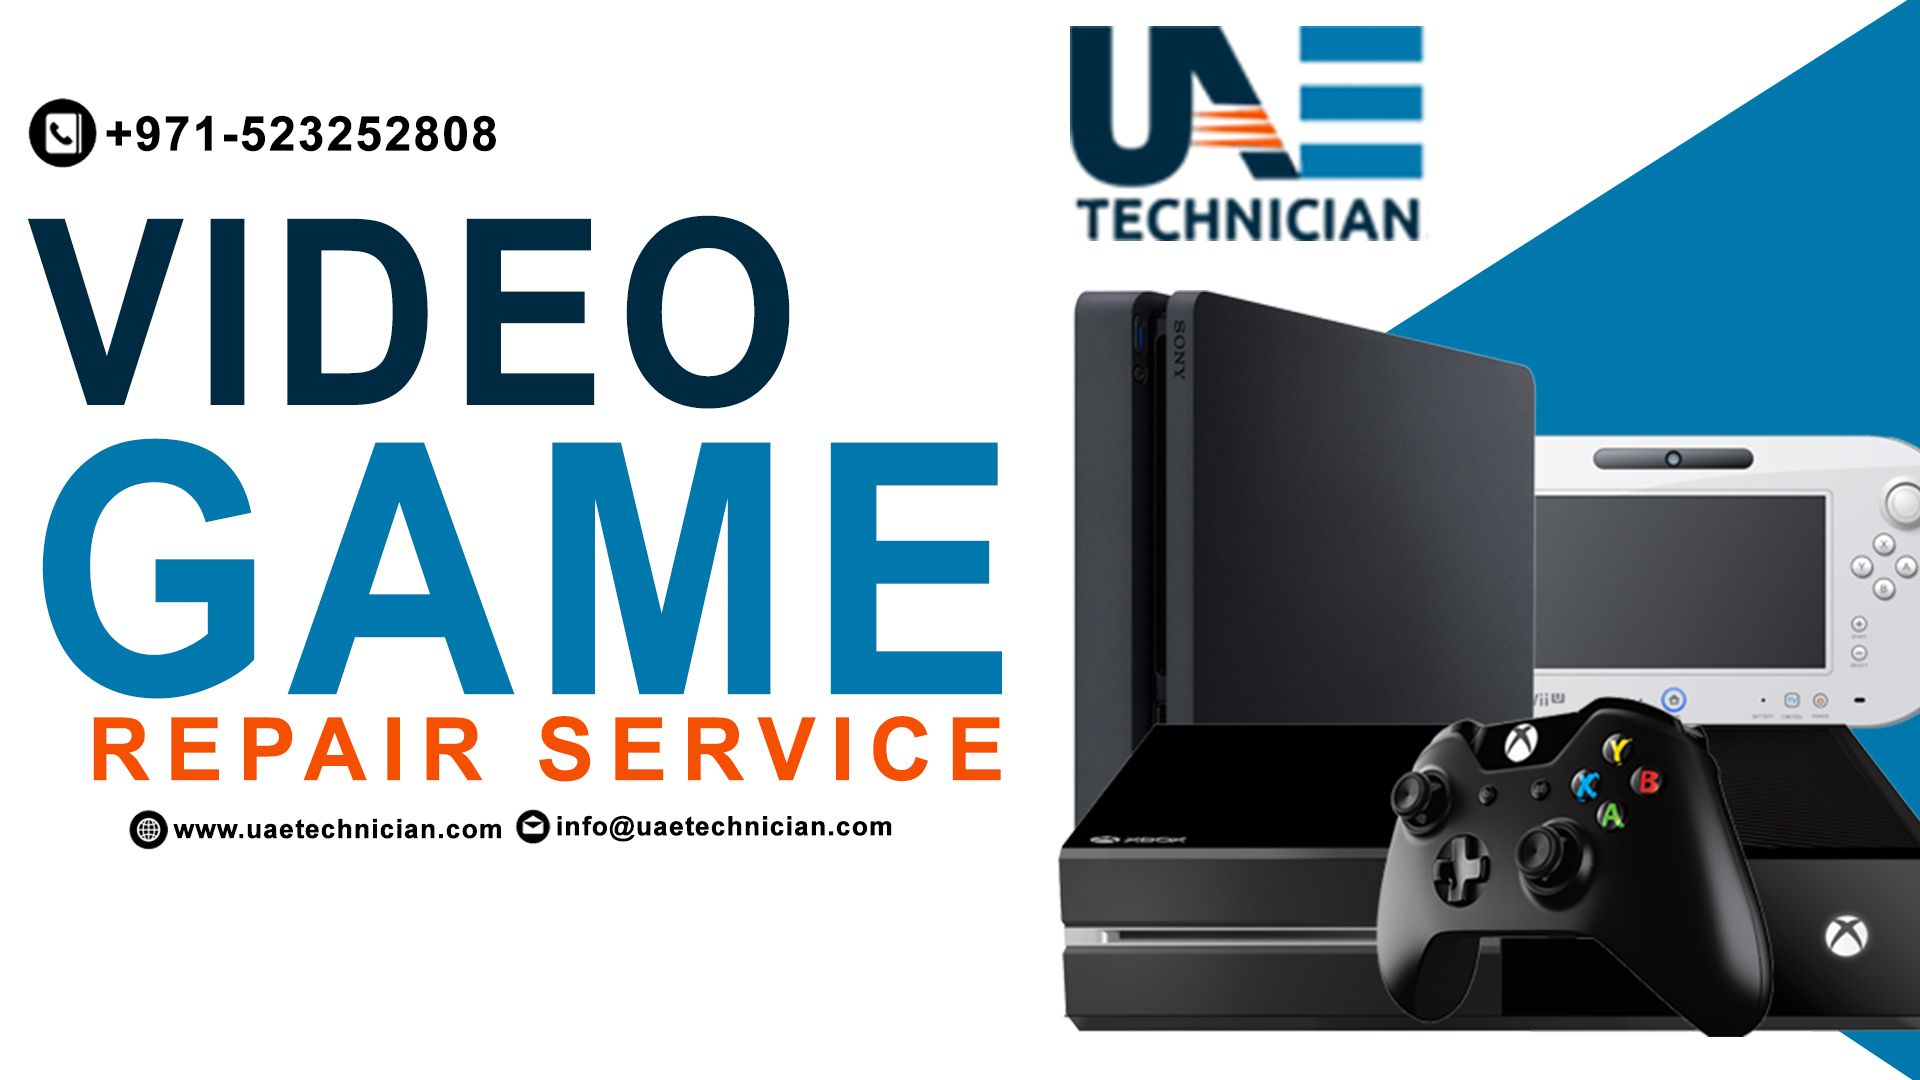 Facing issue in your GamingConsole? Require a reliable